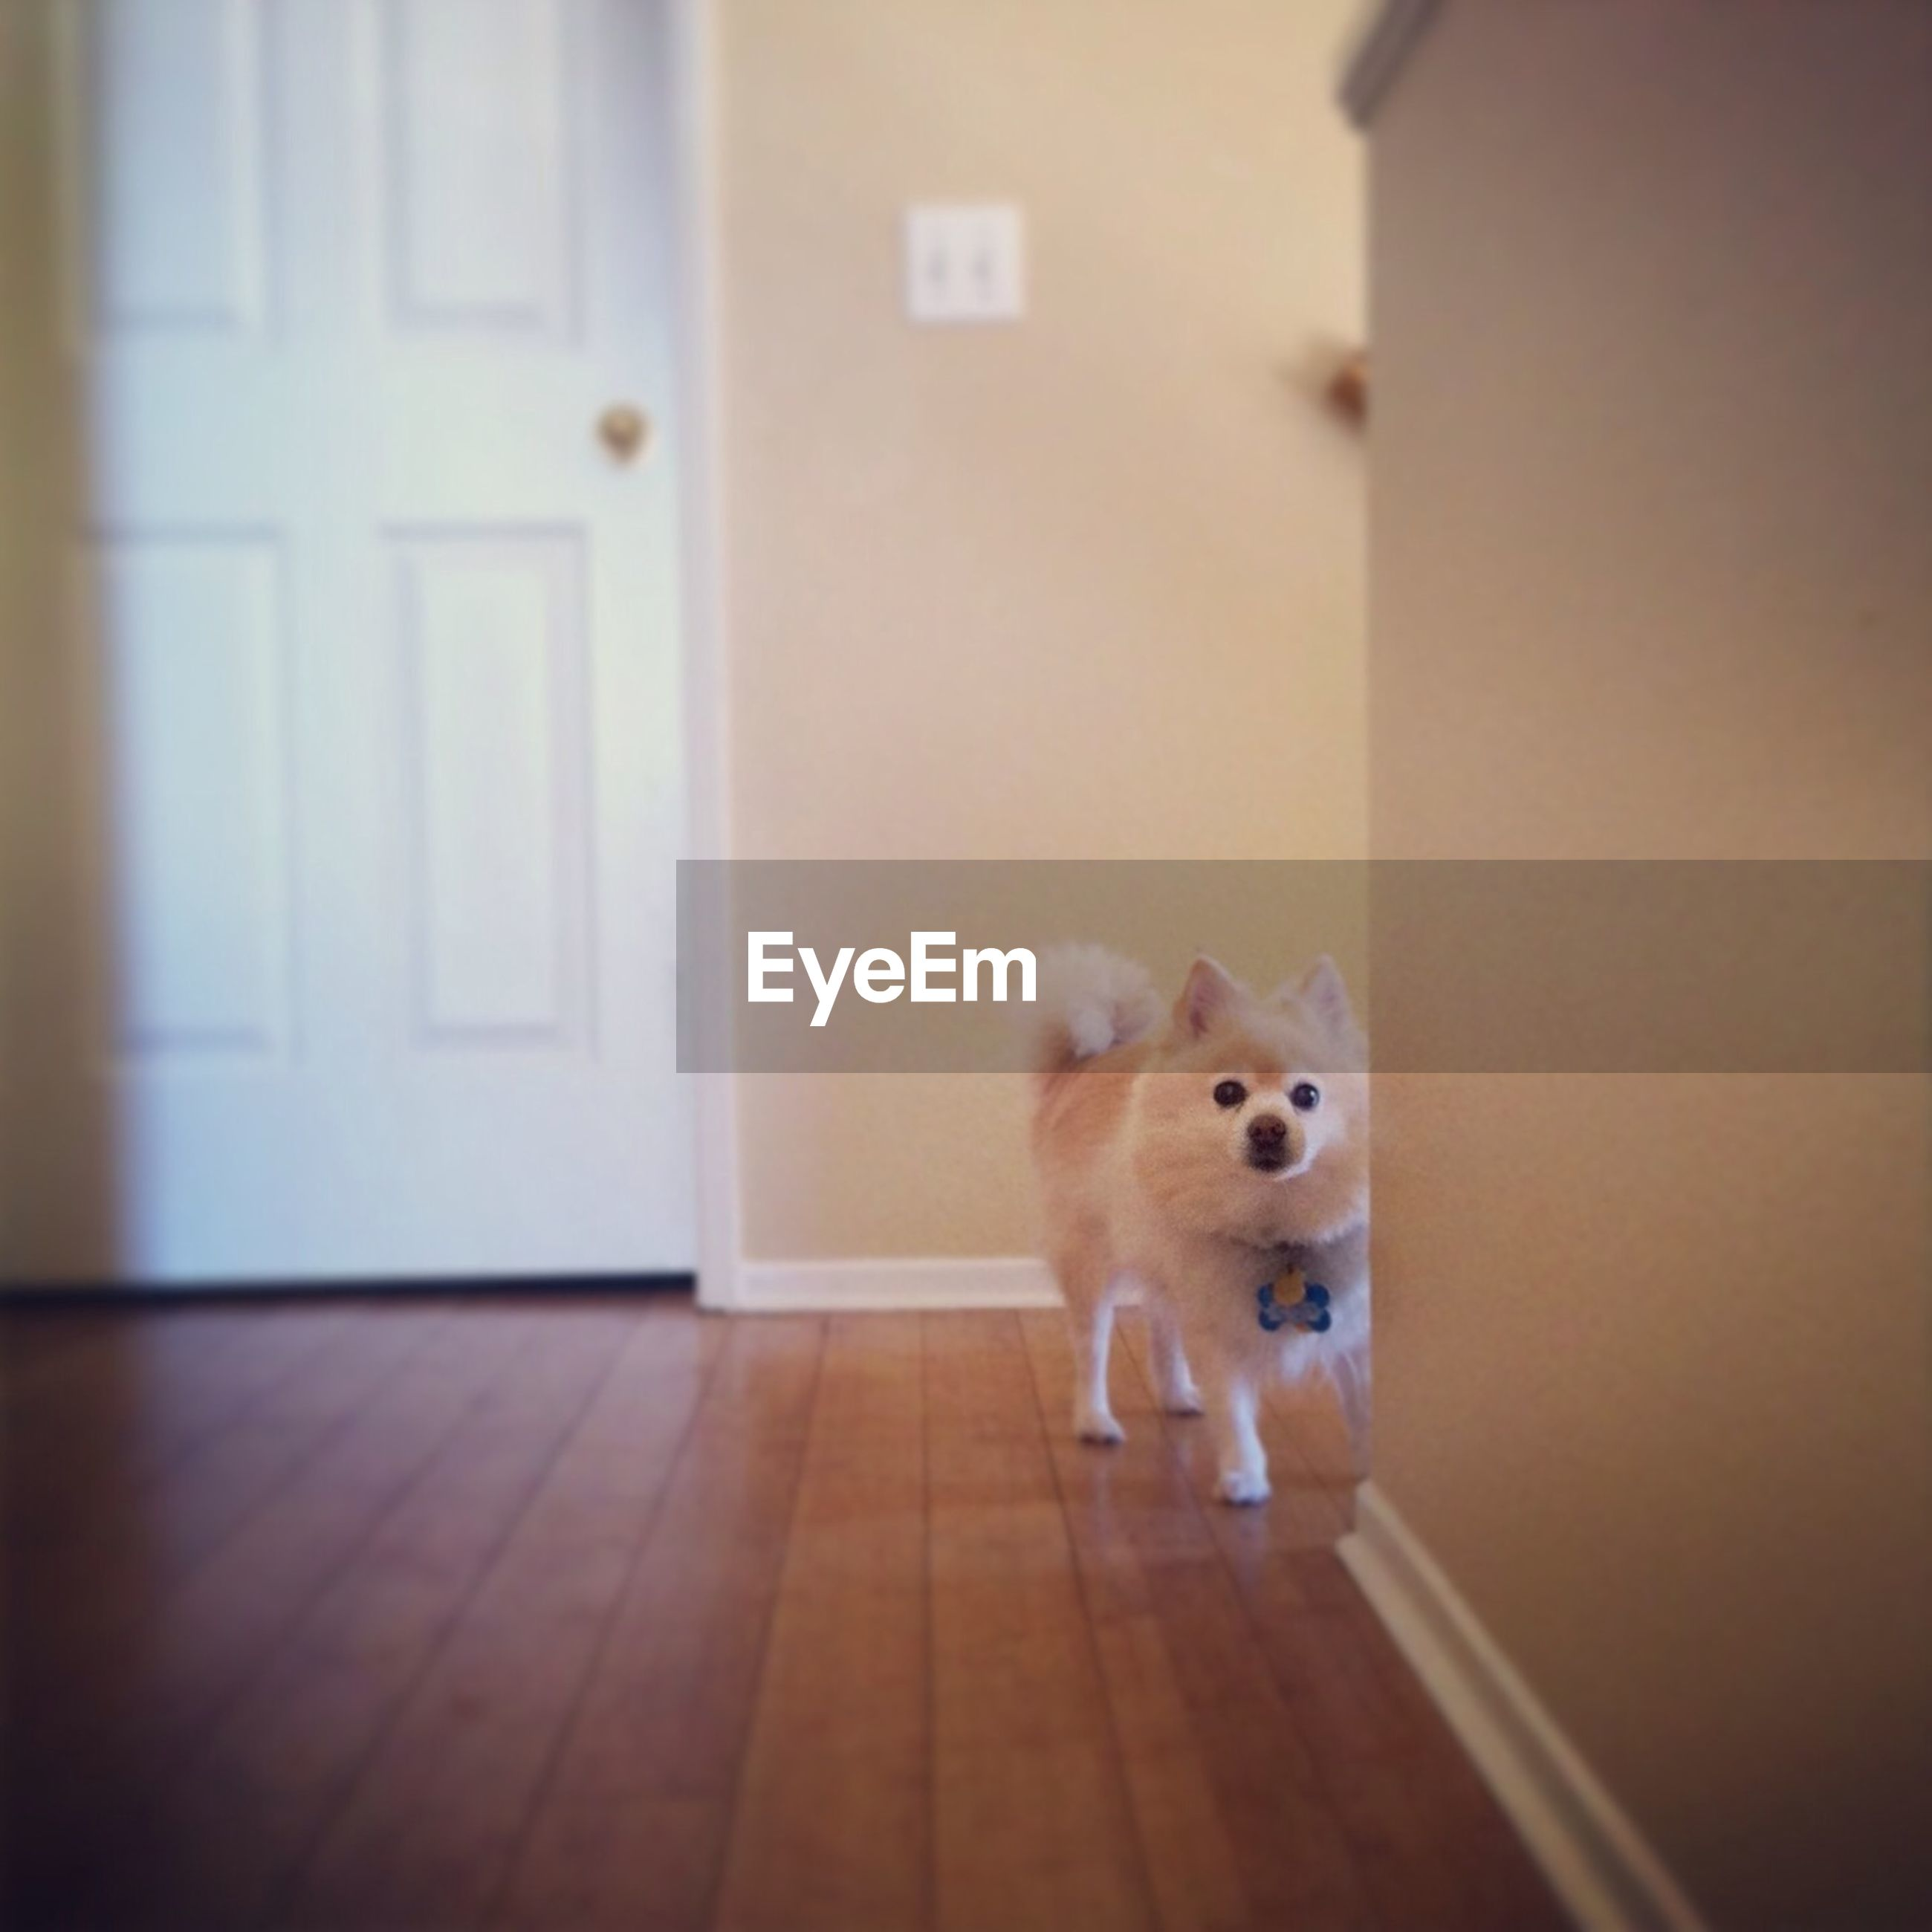 pets, dog, domestic animals, one animal, indoors, animal themes, mammal, home interior, portrait, flooring, full length, looking at camera, sitting, no people, door, hardwood floor, architecture, front view, standing, built structure